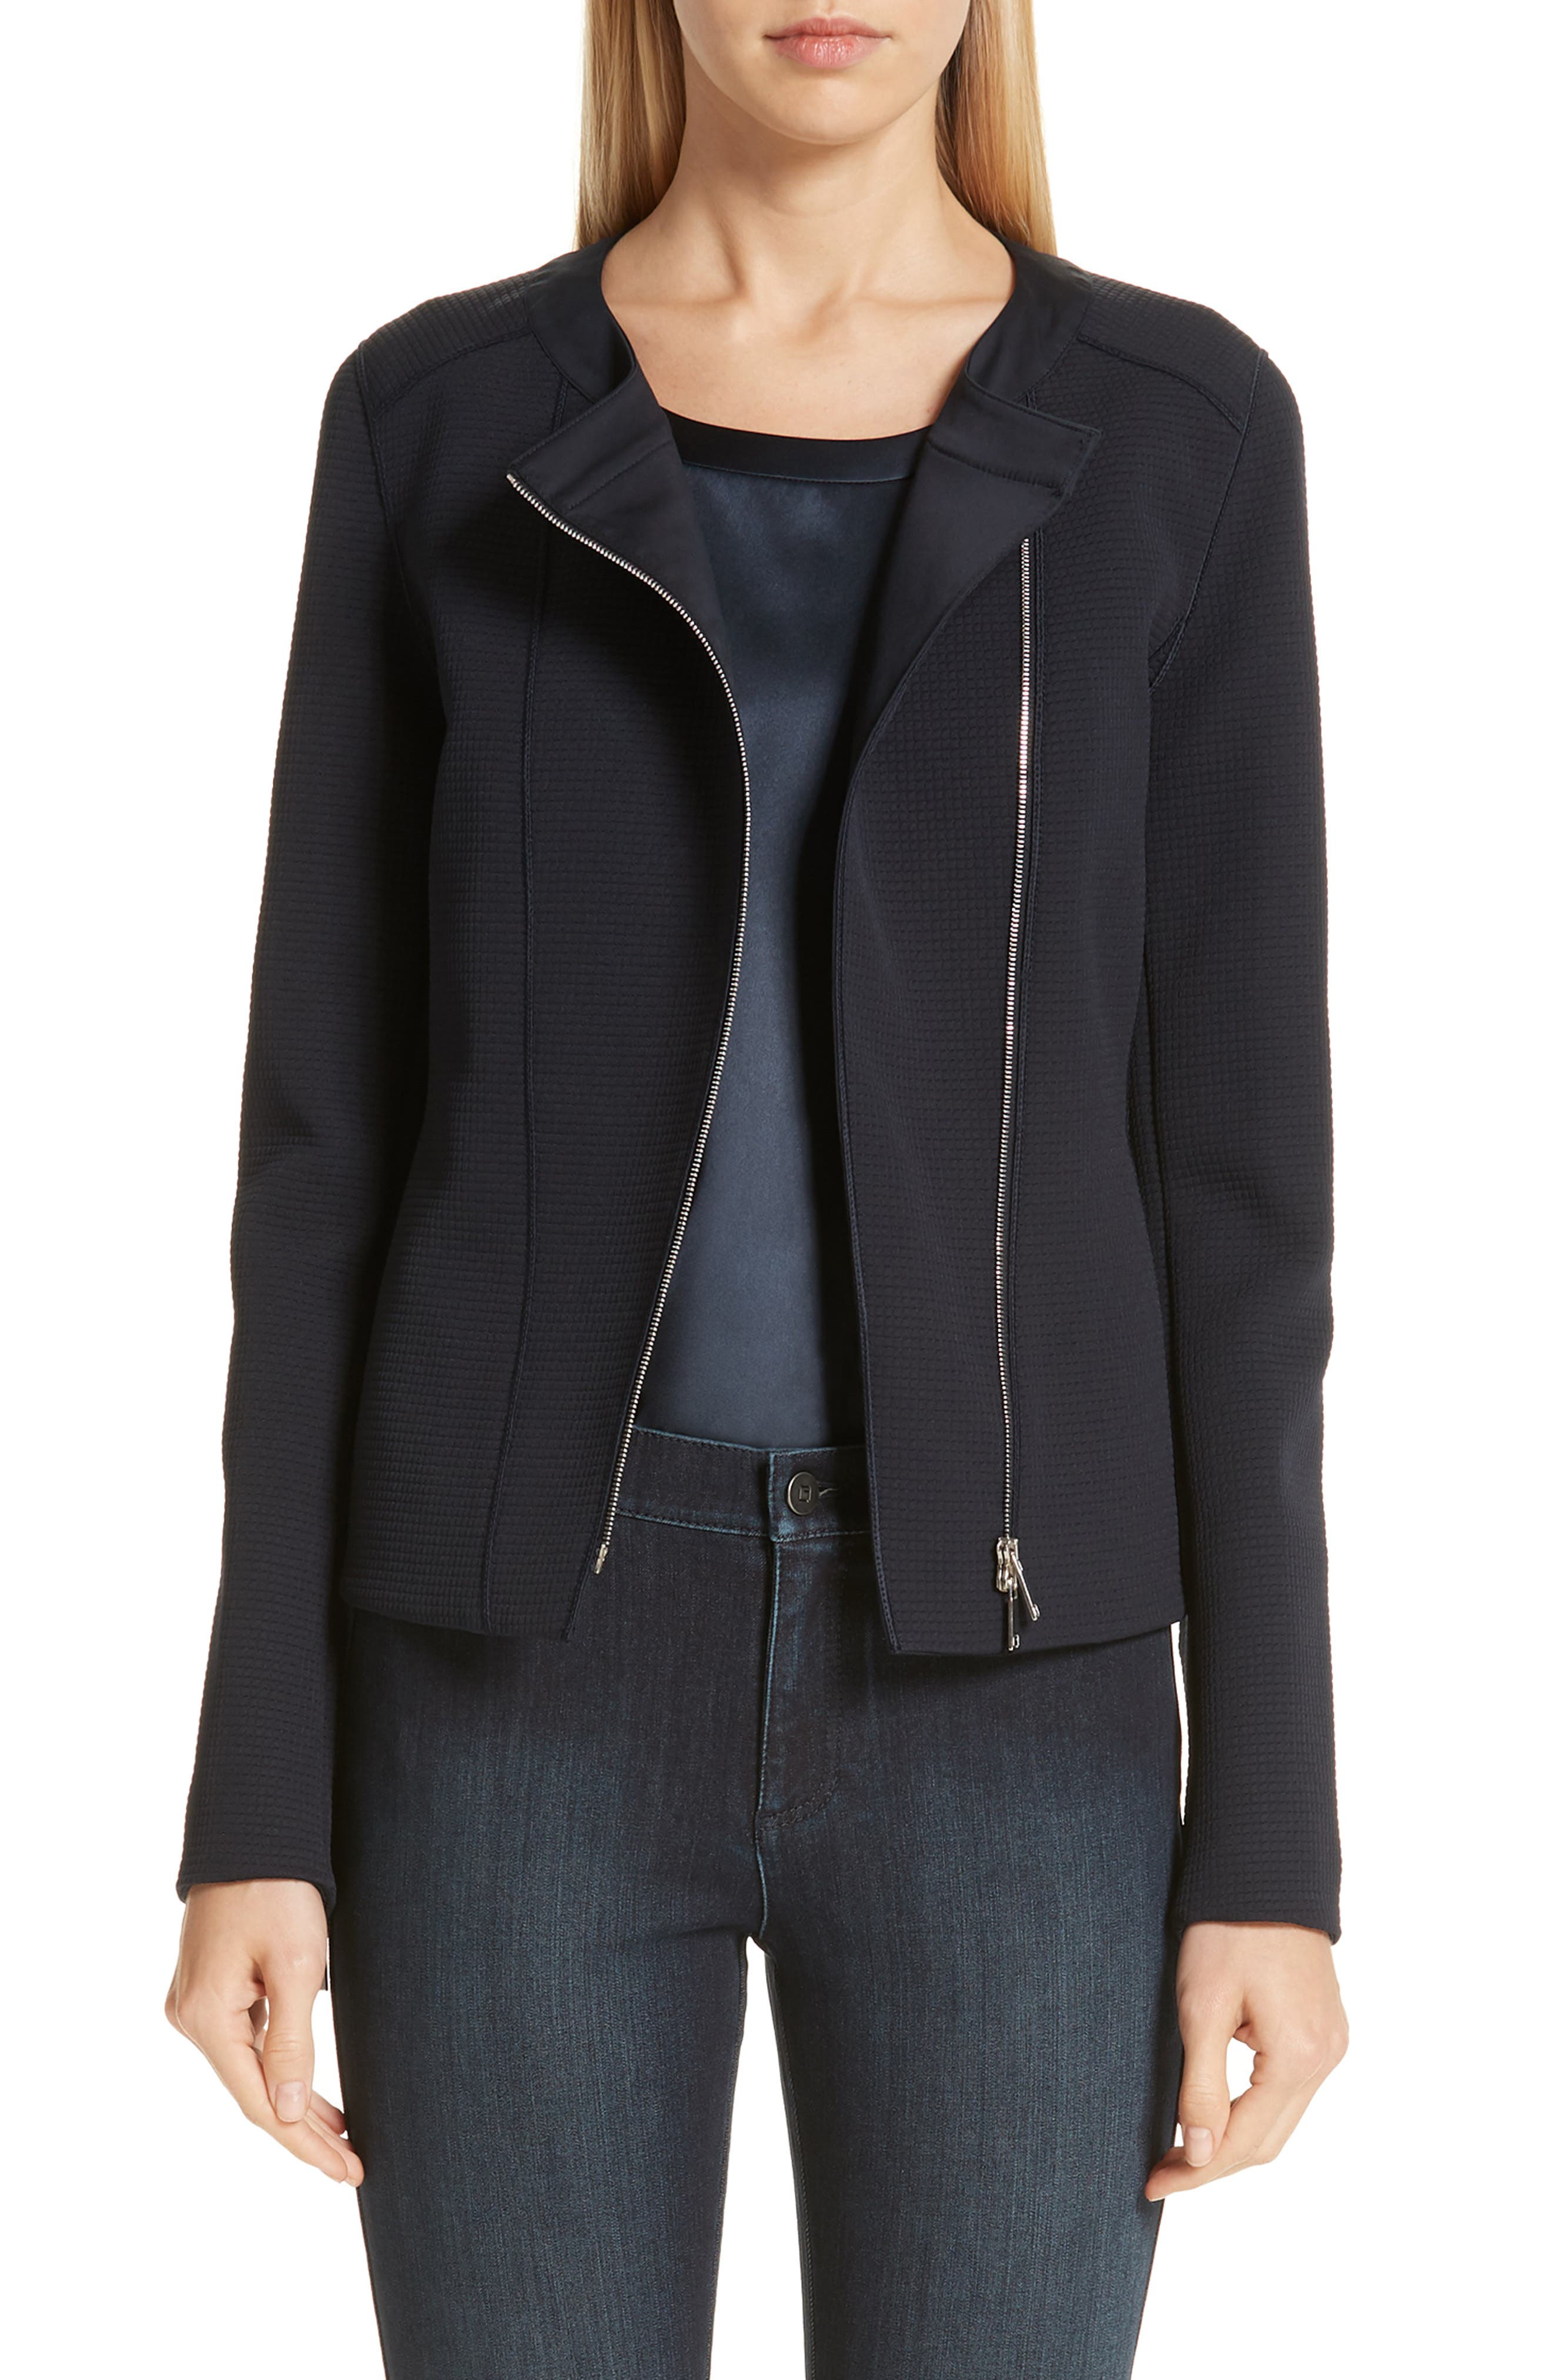 LAFAYETTE 148 NEW YORK, Trista Moto Jacket, Main thumbnail 1, color, INK